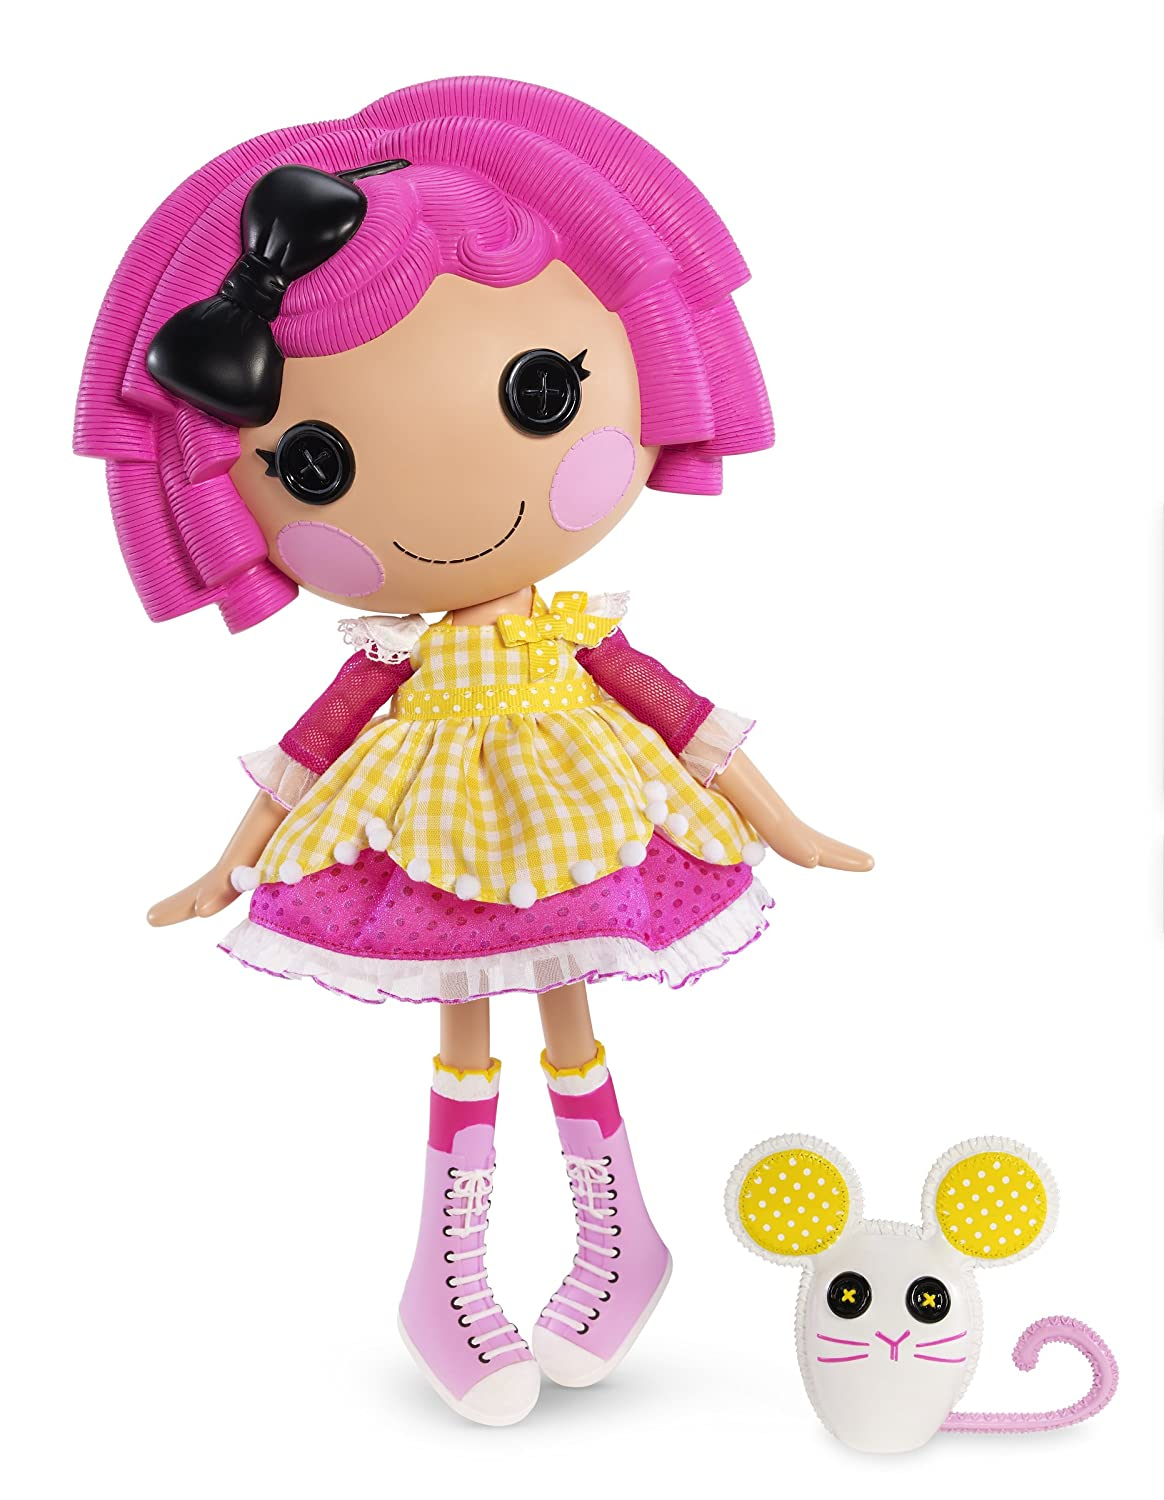 Lalaloopsy Crumbs Sugar Cookie Target Doll Crumb Sugar Cookie